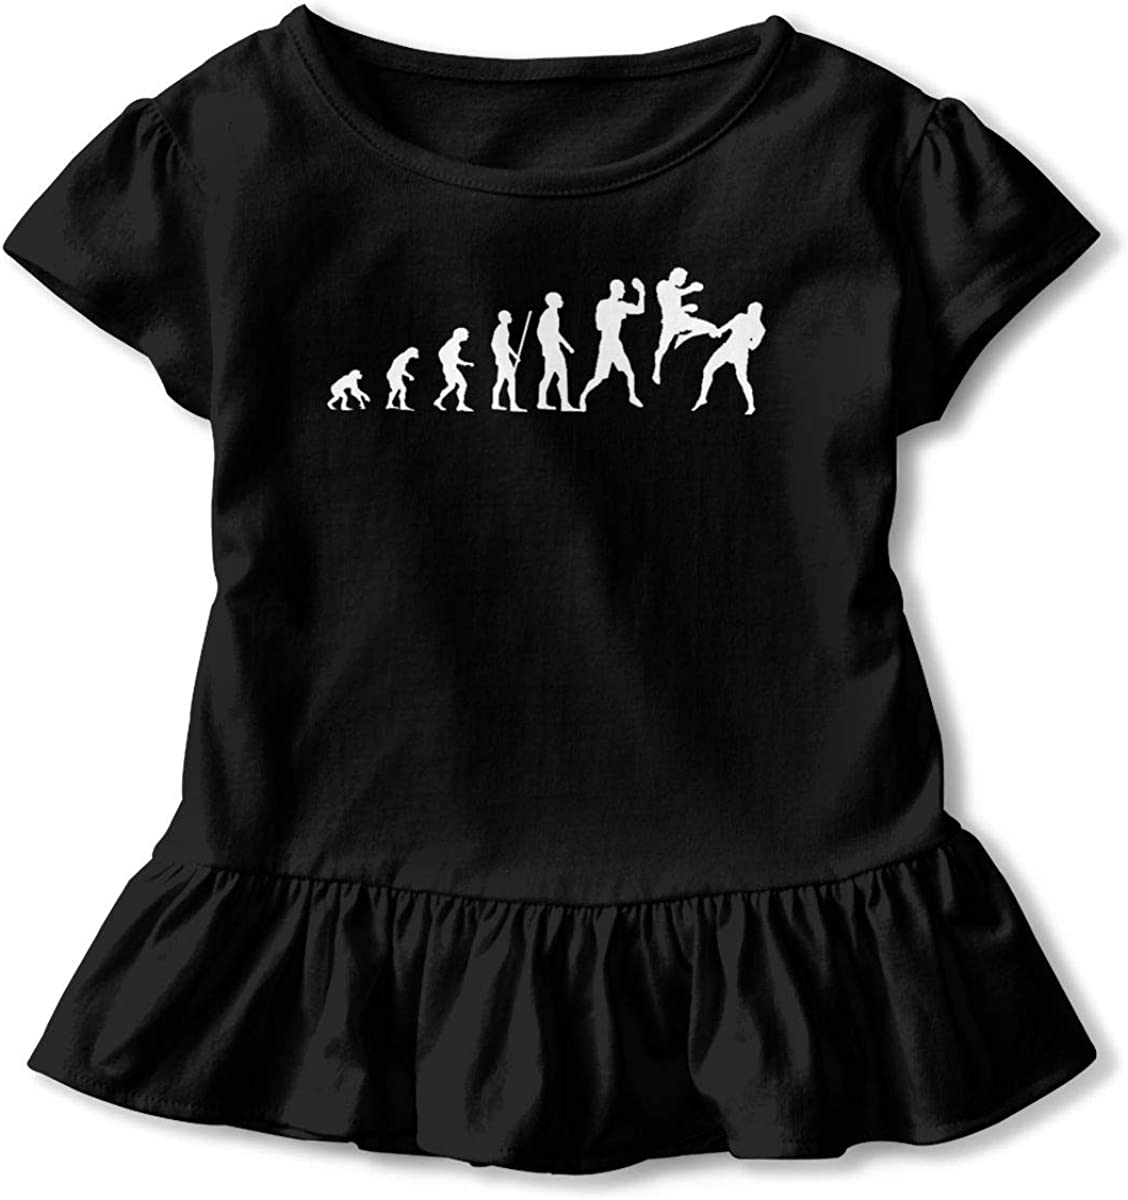 Not Available Muay Thai Boxing Evolution Shirt Baby Girls Ruffles Print Clothes for 2-6 Years Old Baby Black